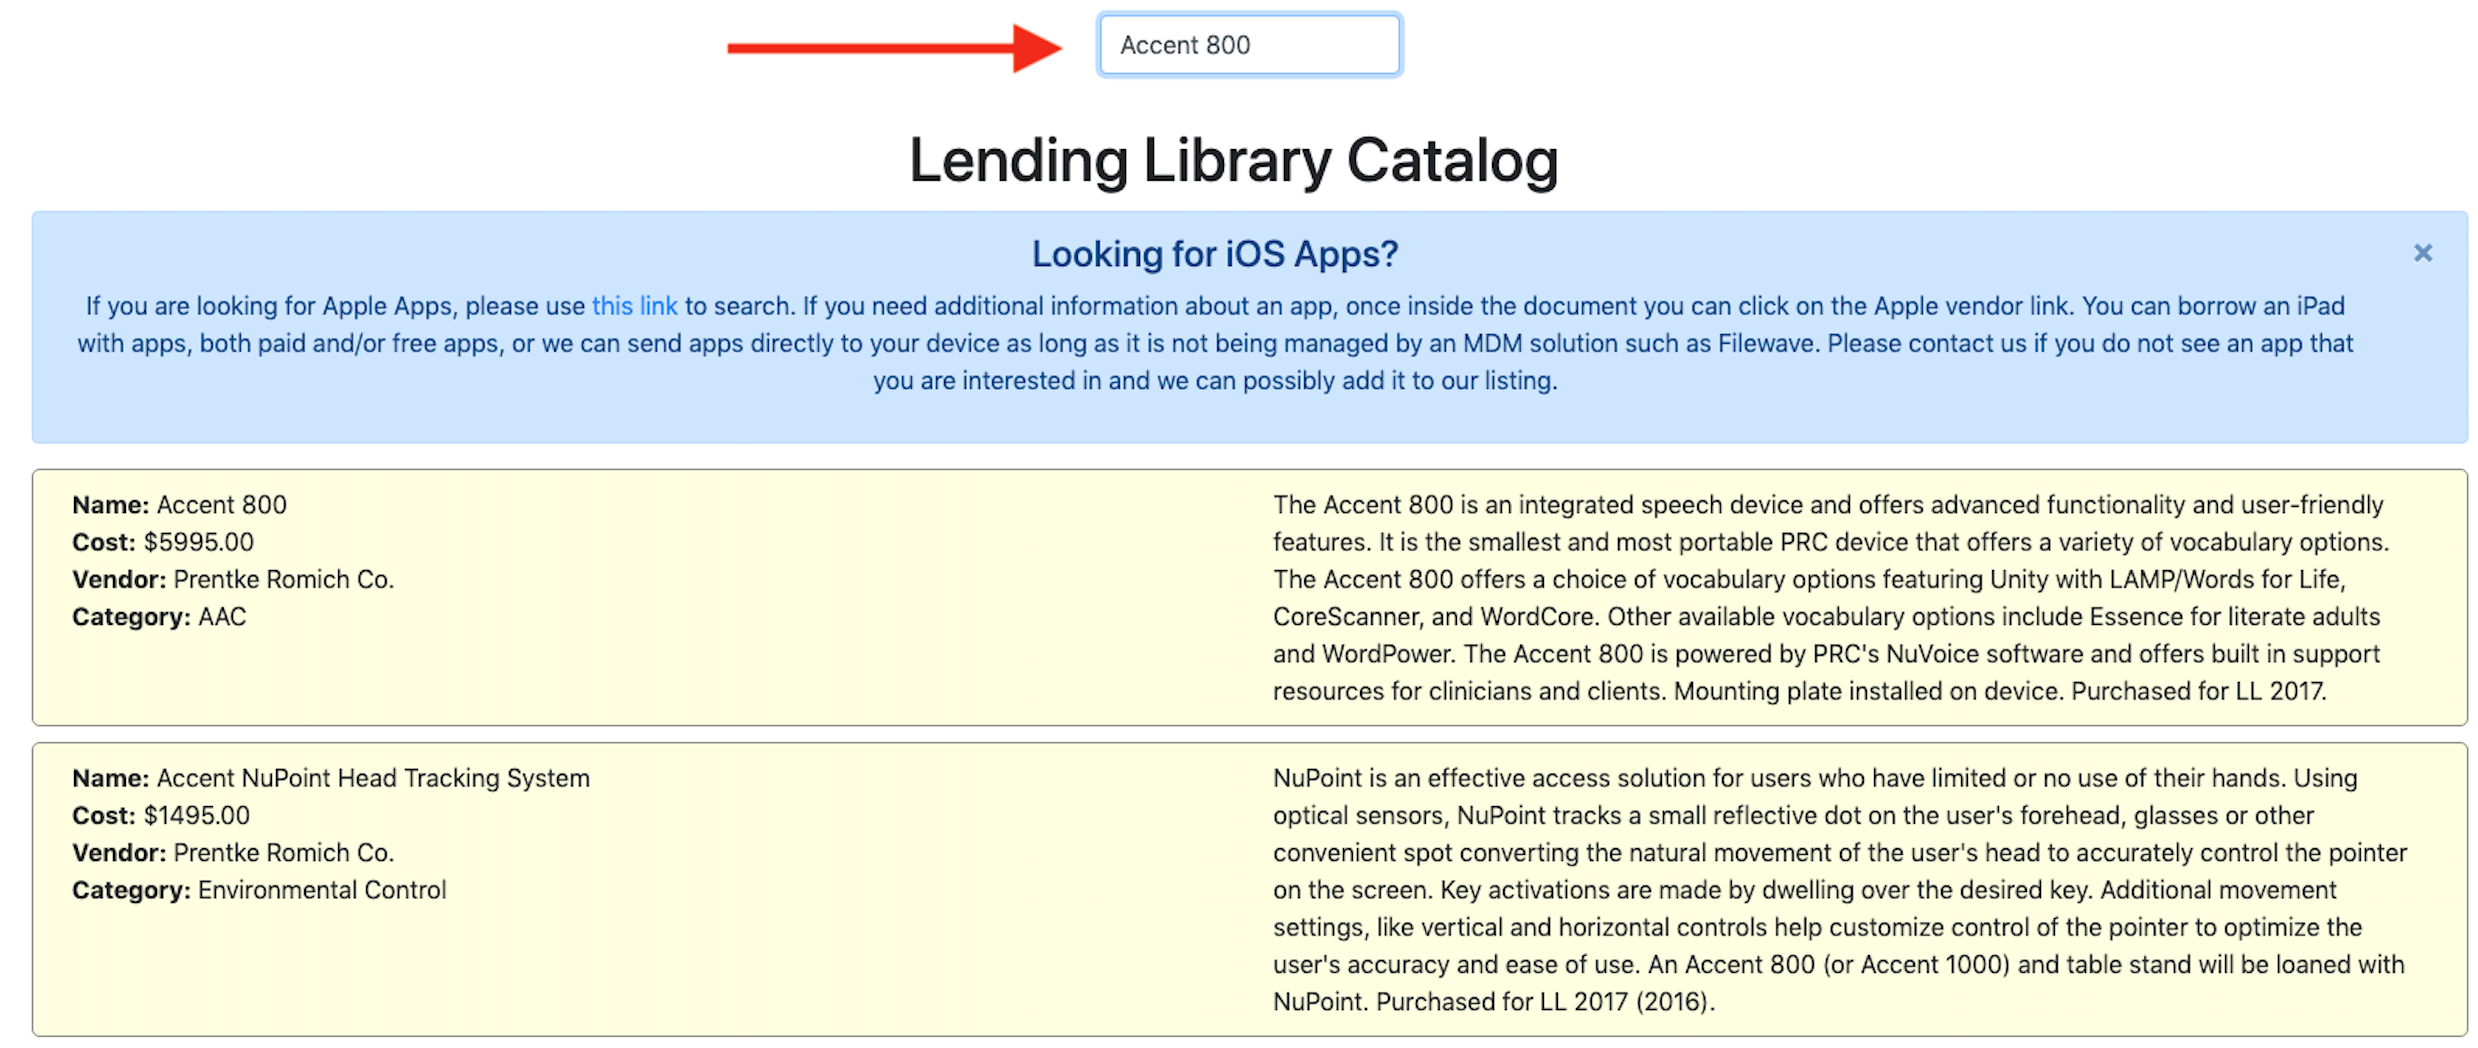 Lending Library catalog with